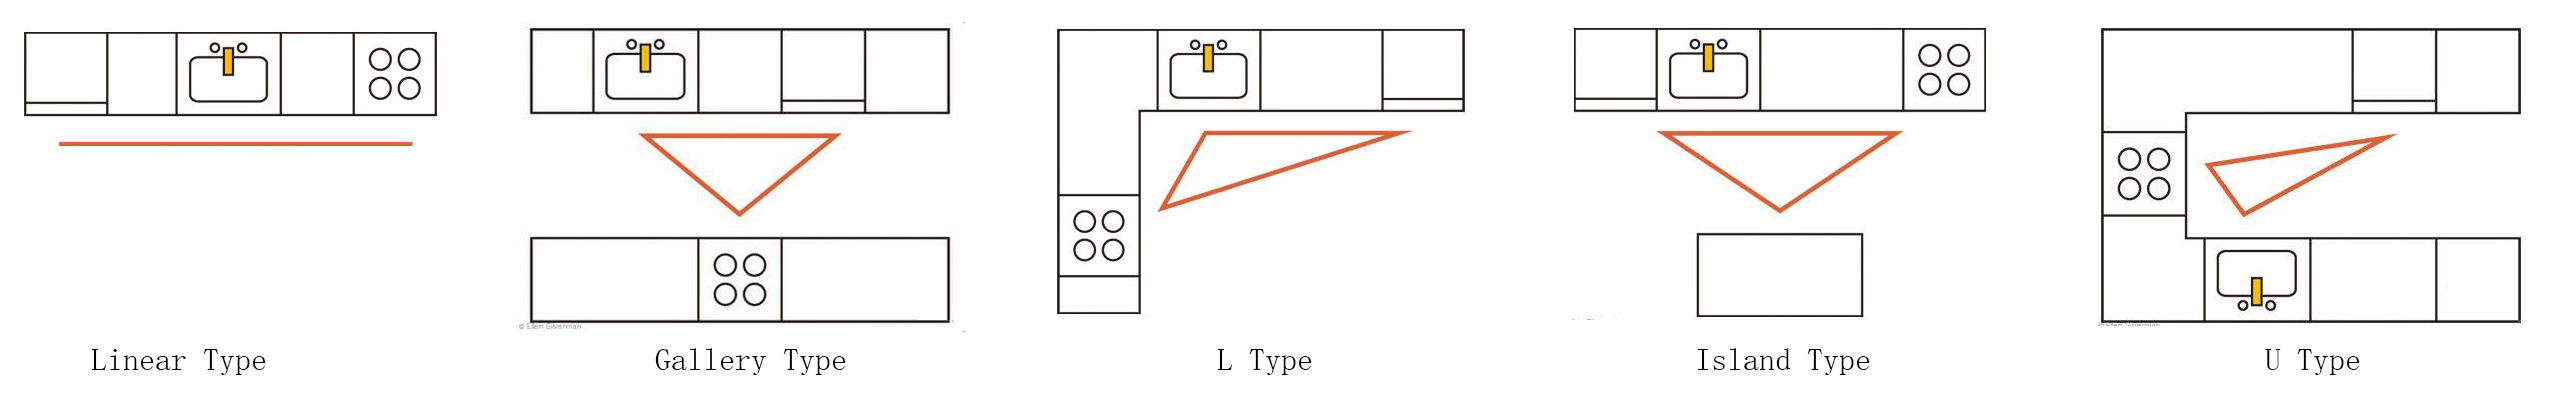 kitchen layout model